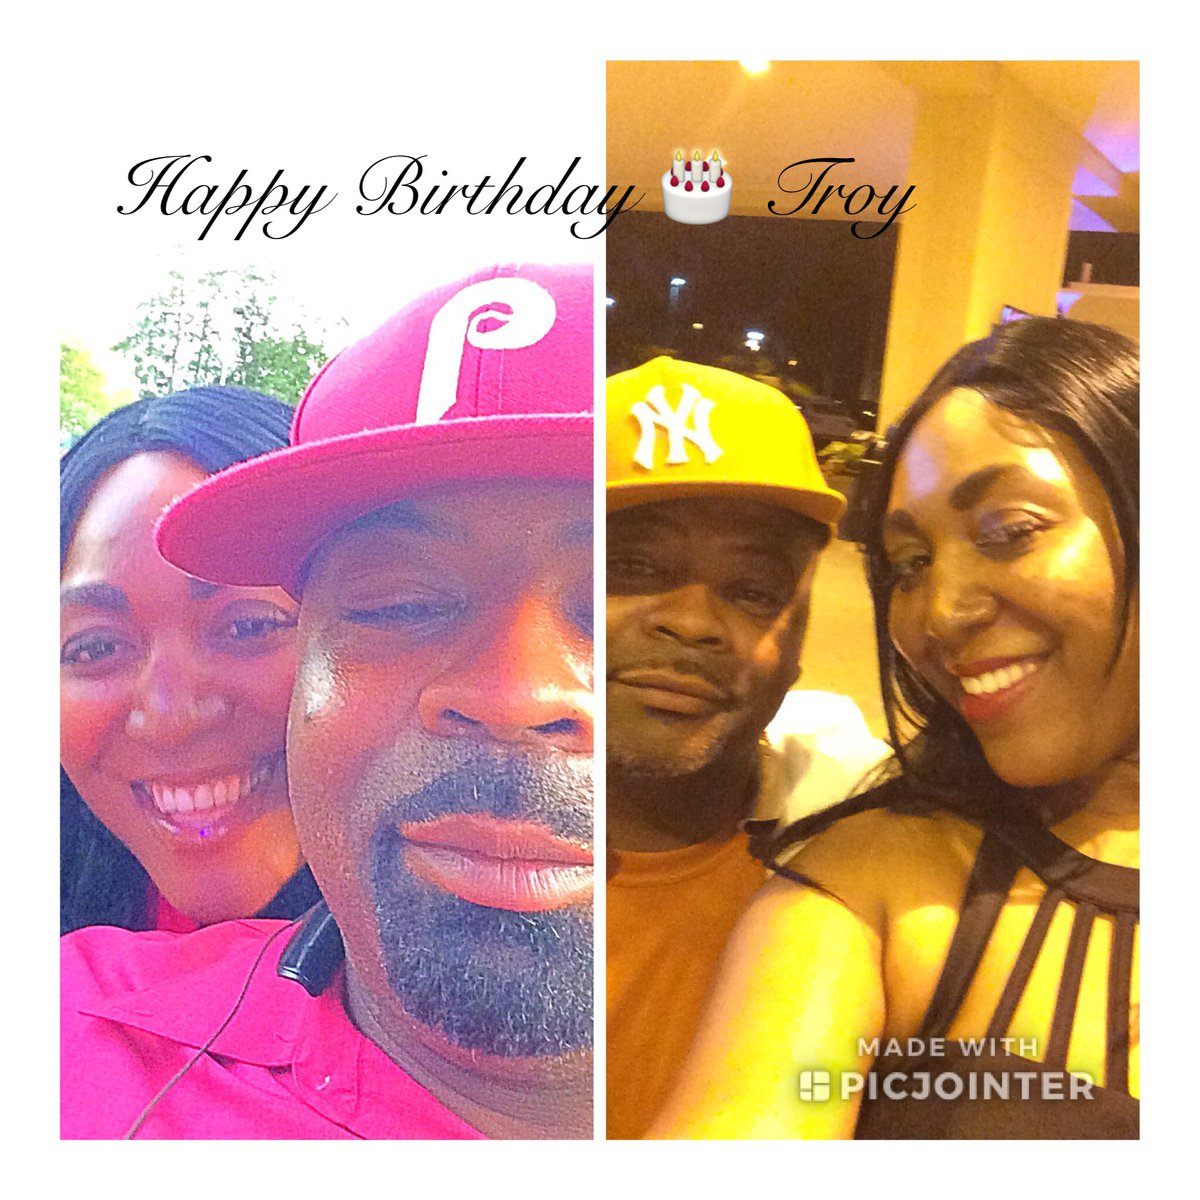 Happy Birthday 🎁🎂🎊🎉🎉🎈 @wondertroy2 again! Should I say #oldhead or #youngbull {inside joke} no really Troy thanks for keeping all the incredible artist legacies alive through your photographs. KING 👑 #TROYHUGHES HBD 📷📸 @DarleneOGOrtiz @KingBobbyBrown